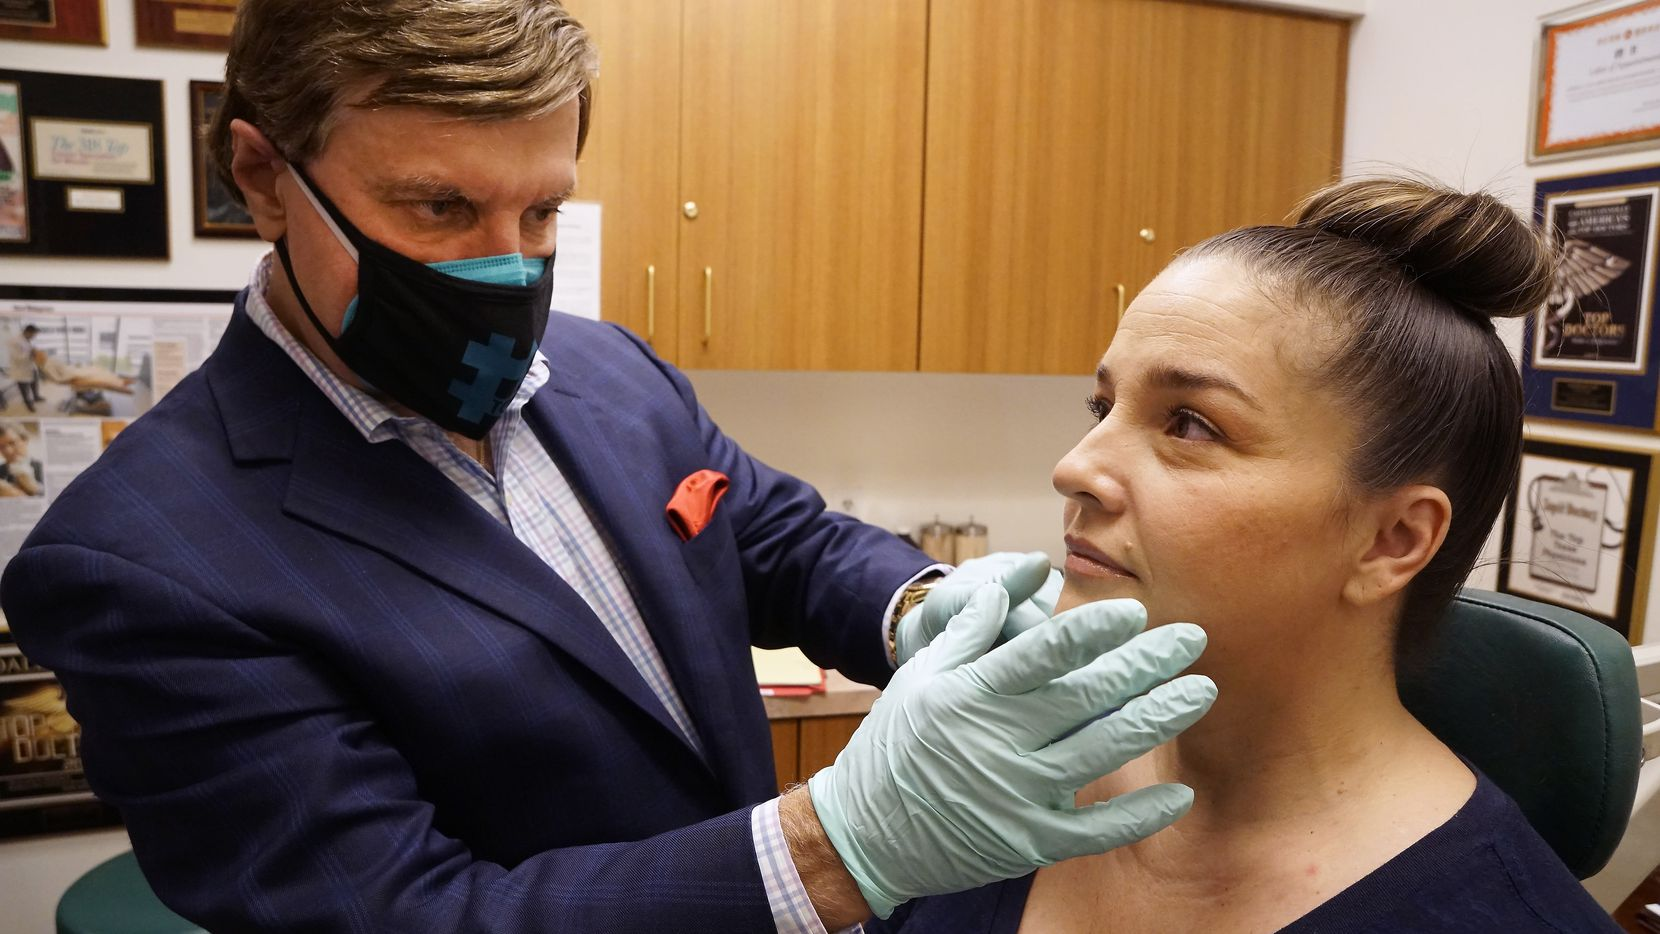 Dr. Rod J. Rohrich does a follow-up to inspect Jennifer Smith's face fillers at his office in Dallas on Monday. Rohrich said Botox has been a popular procedure during the pandemic as people want to get rid of wrinkles they're spotting while on Zoom calls.